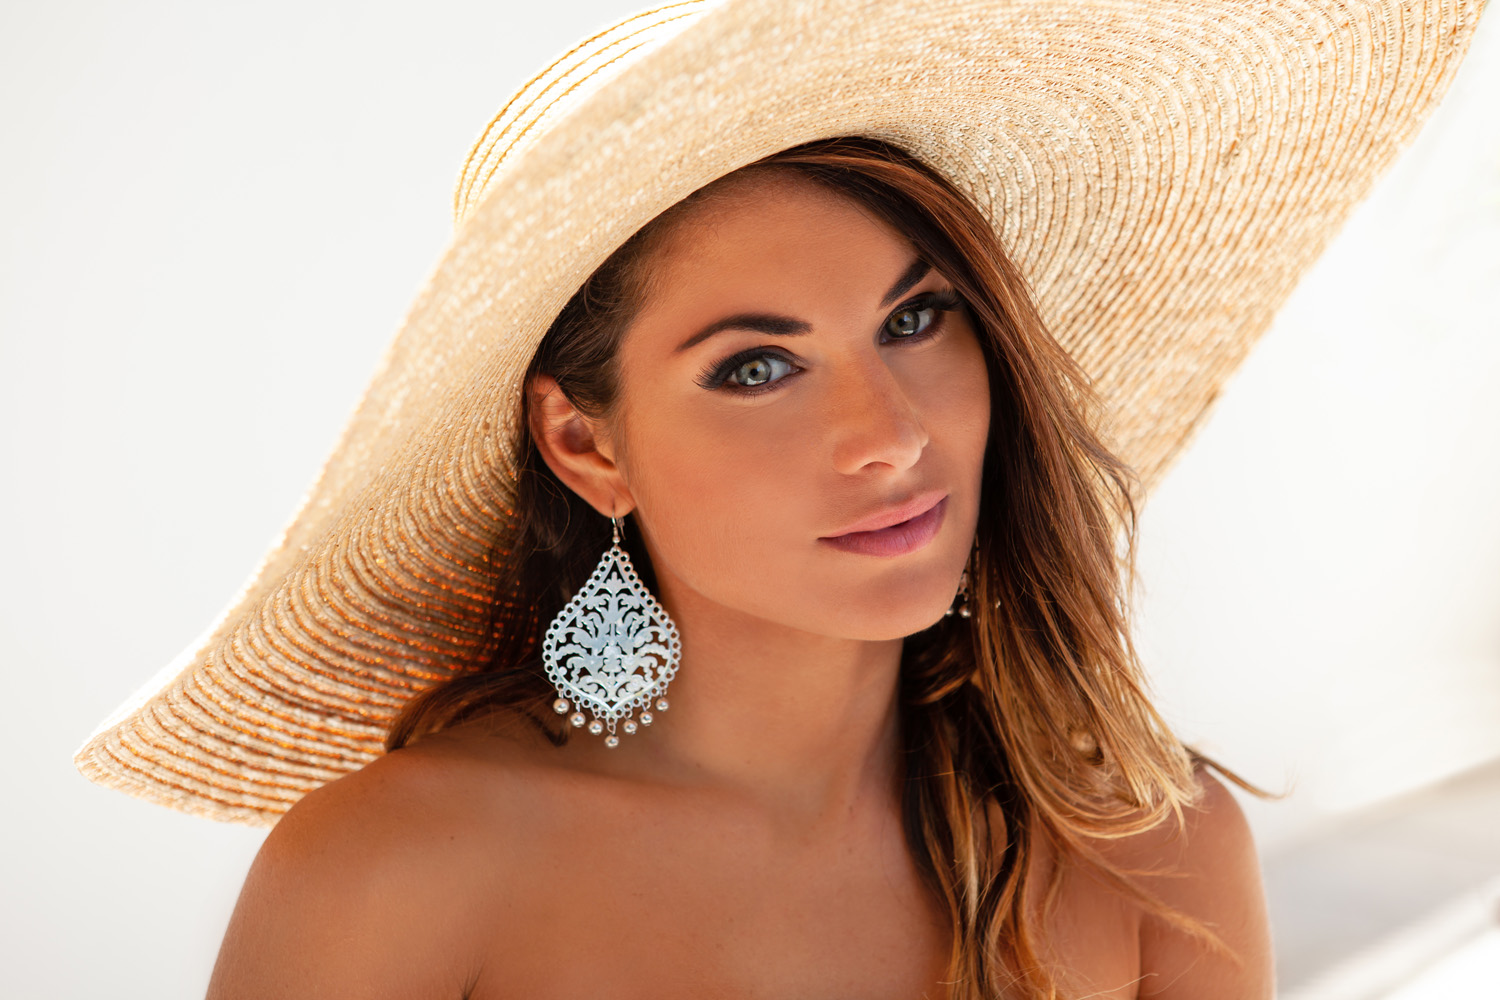 Model in a hat with earrings, fitness model with green eyes, fitness model in a bikini, qca photographer, queensland college of art photography graduate, queensland college of art photography, queensland college of art masters degree, queensland college of art graduate, model sitting at the pool, gold coast swimwear photography, gold coast model photography, instagram model photography, gold coast instagram model, gold coast instagram photography, gold coast fashion photography, lana noir, surfers paradise photography, broadbeach photographer, robina photographer, professional model photography, gold coast professional model, gold coast lifestyle photography, gold coast fitness photography, gold coast health photography, gold coast healthy living, gold coast healthy lifestyle; gold coast fitness